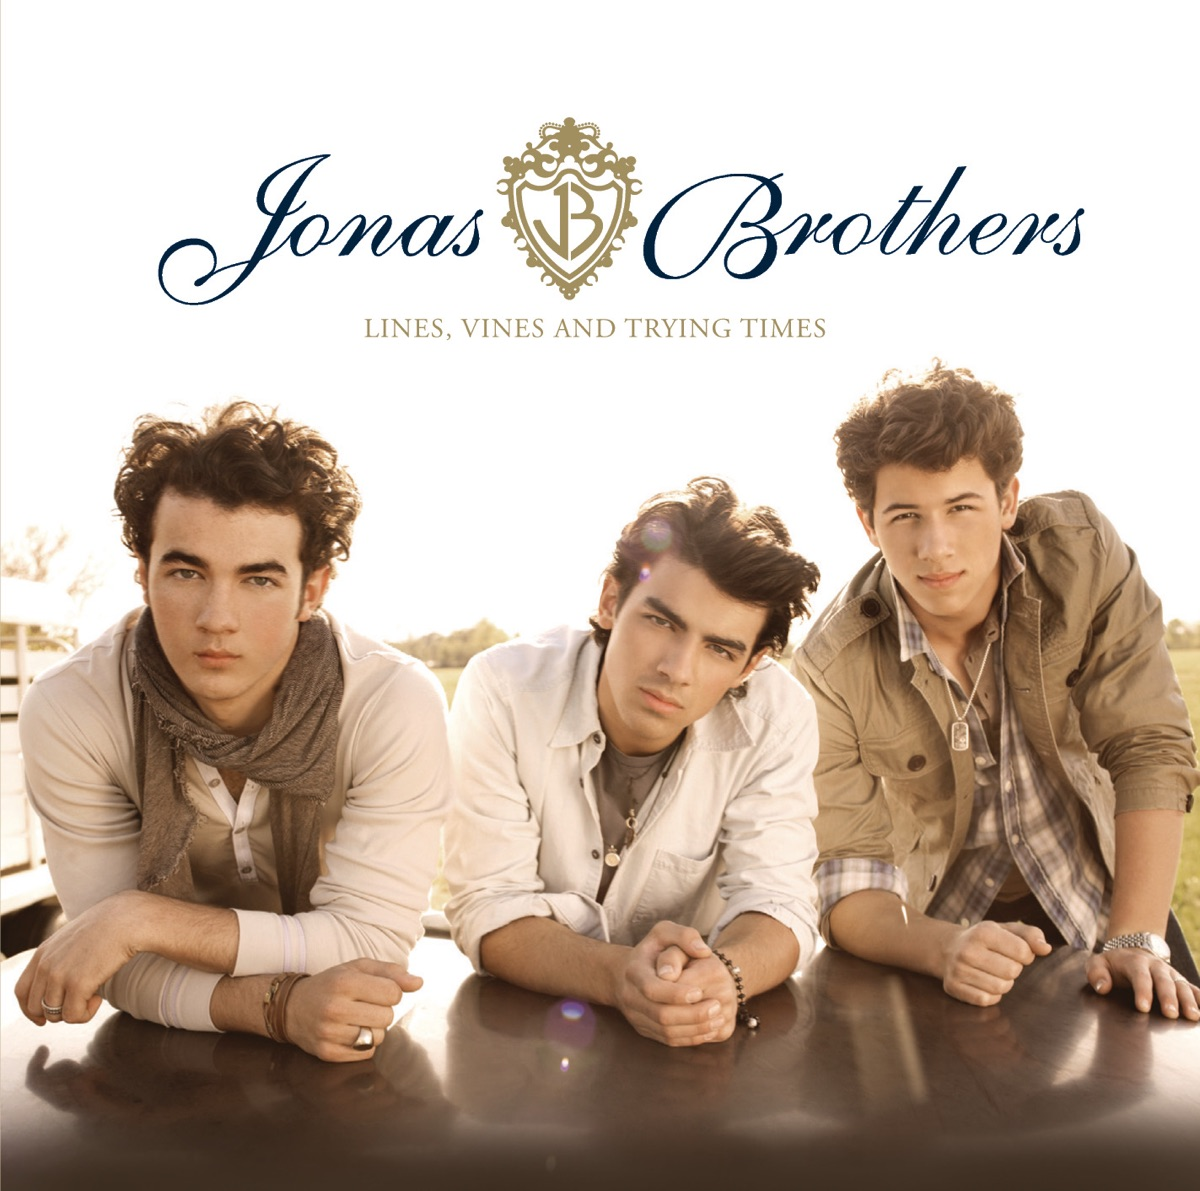 Lines Vines and Trying Times Jonas Brothers CD cover